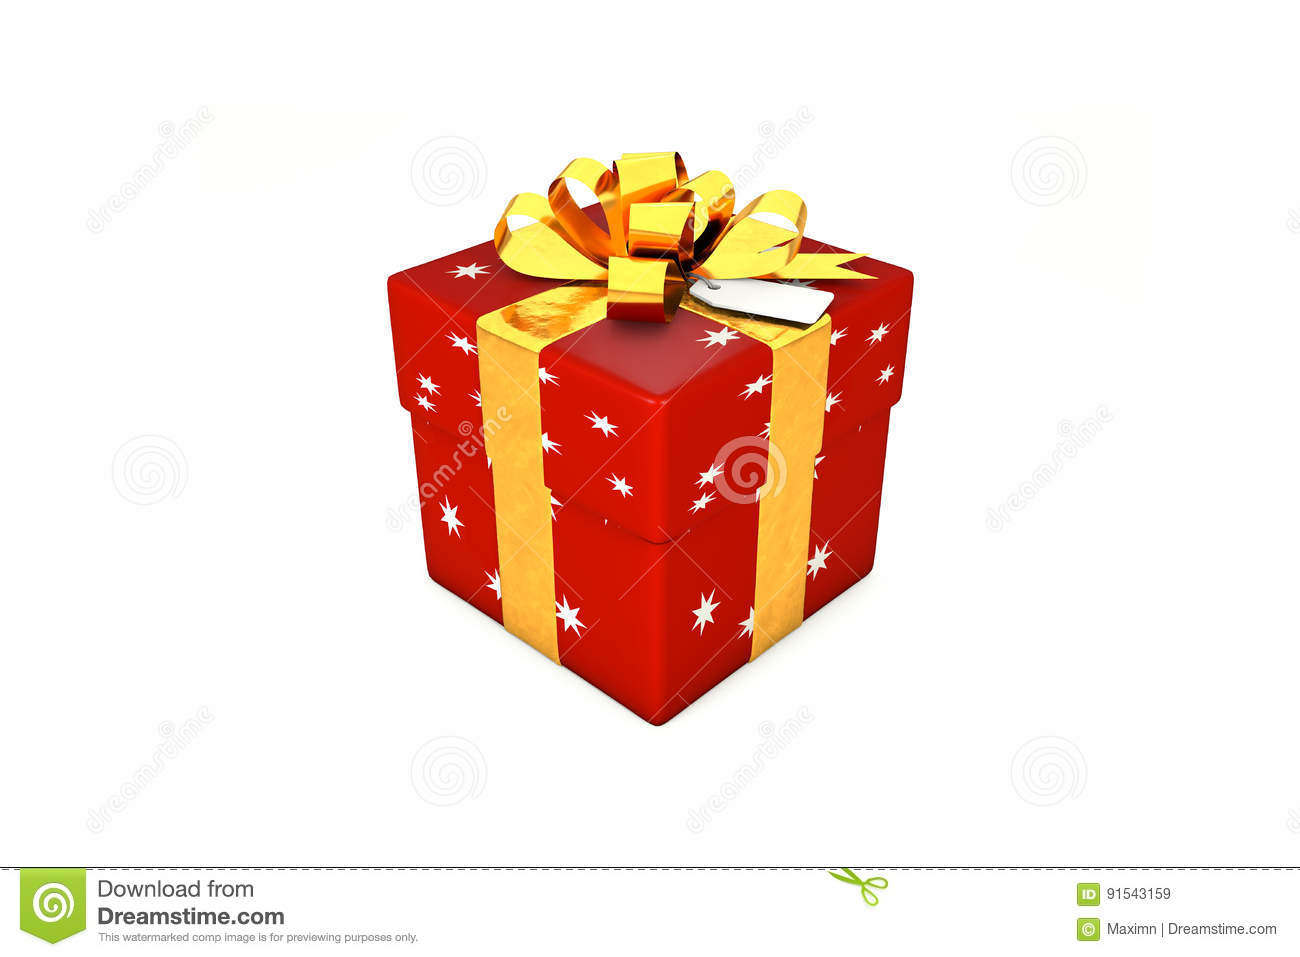 3d illustration: Red-scarlet gift box with star, golden metal ribbon / bow and tag on a white background isolated.